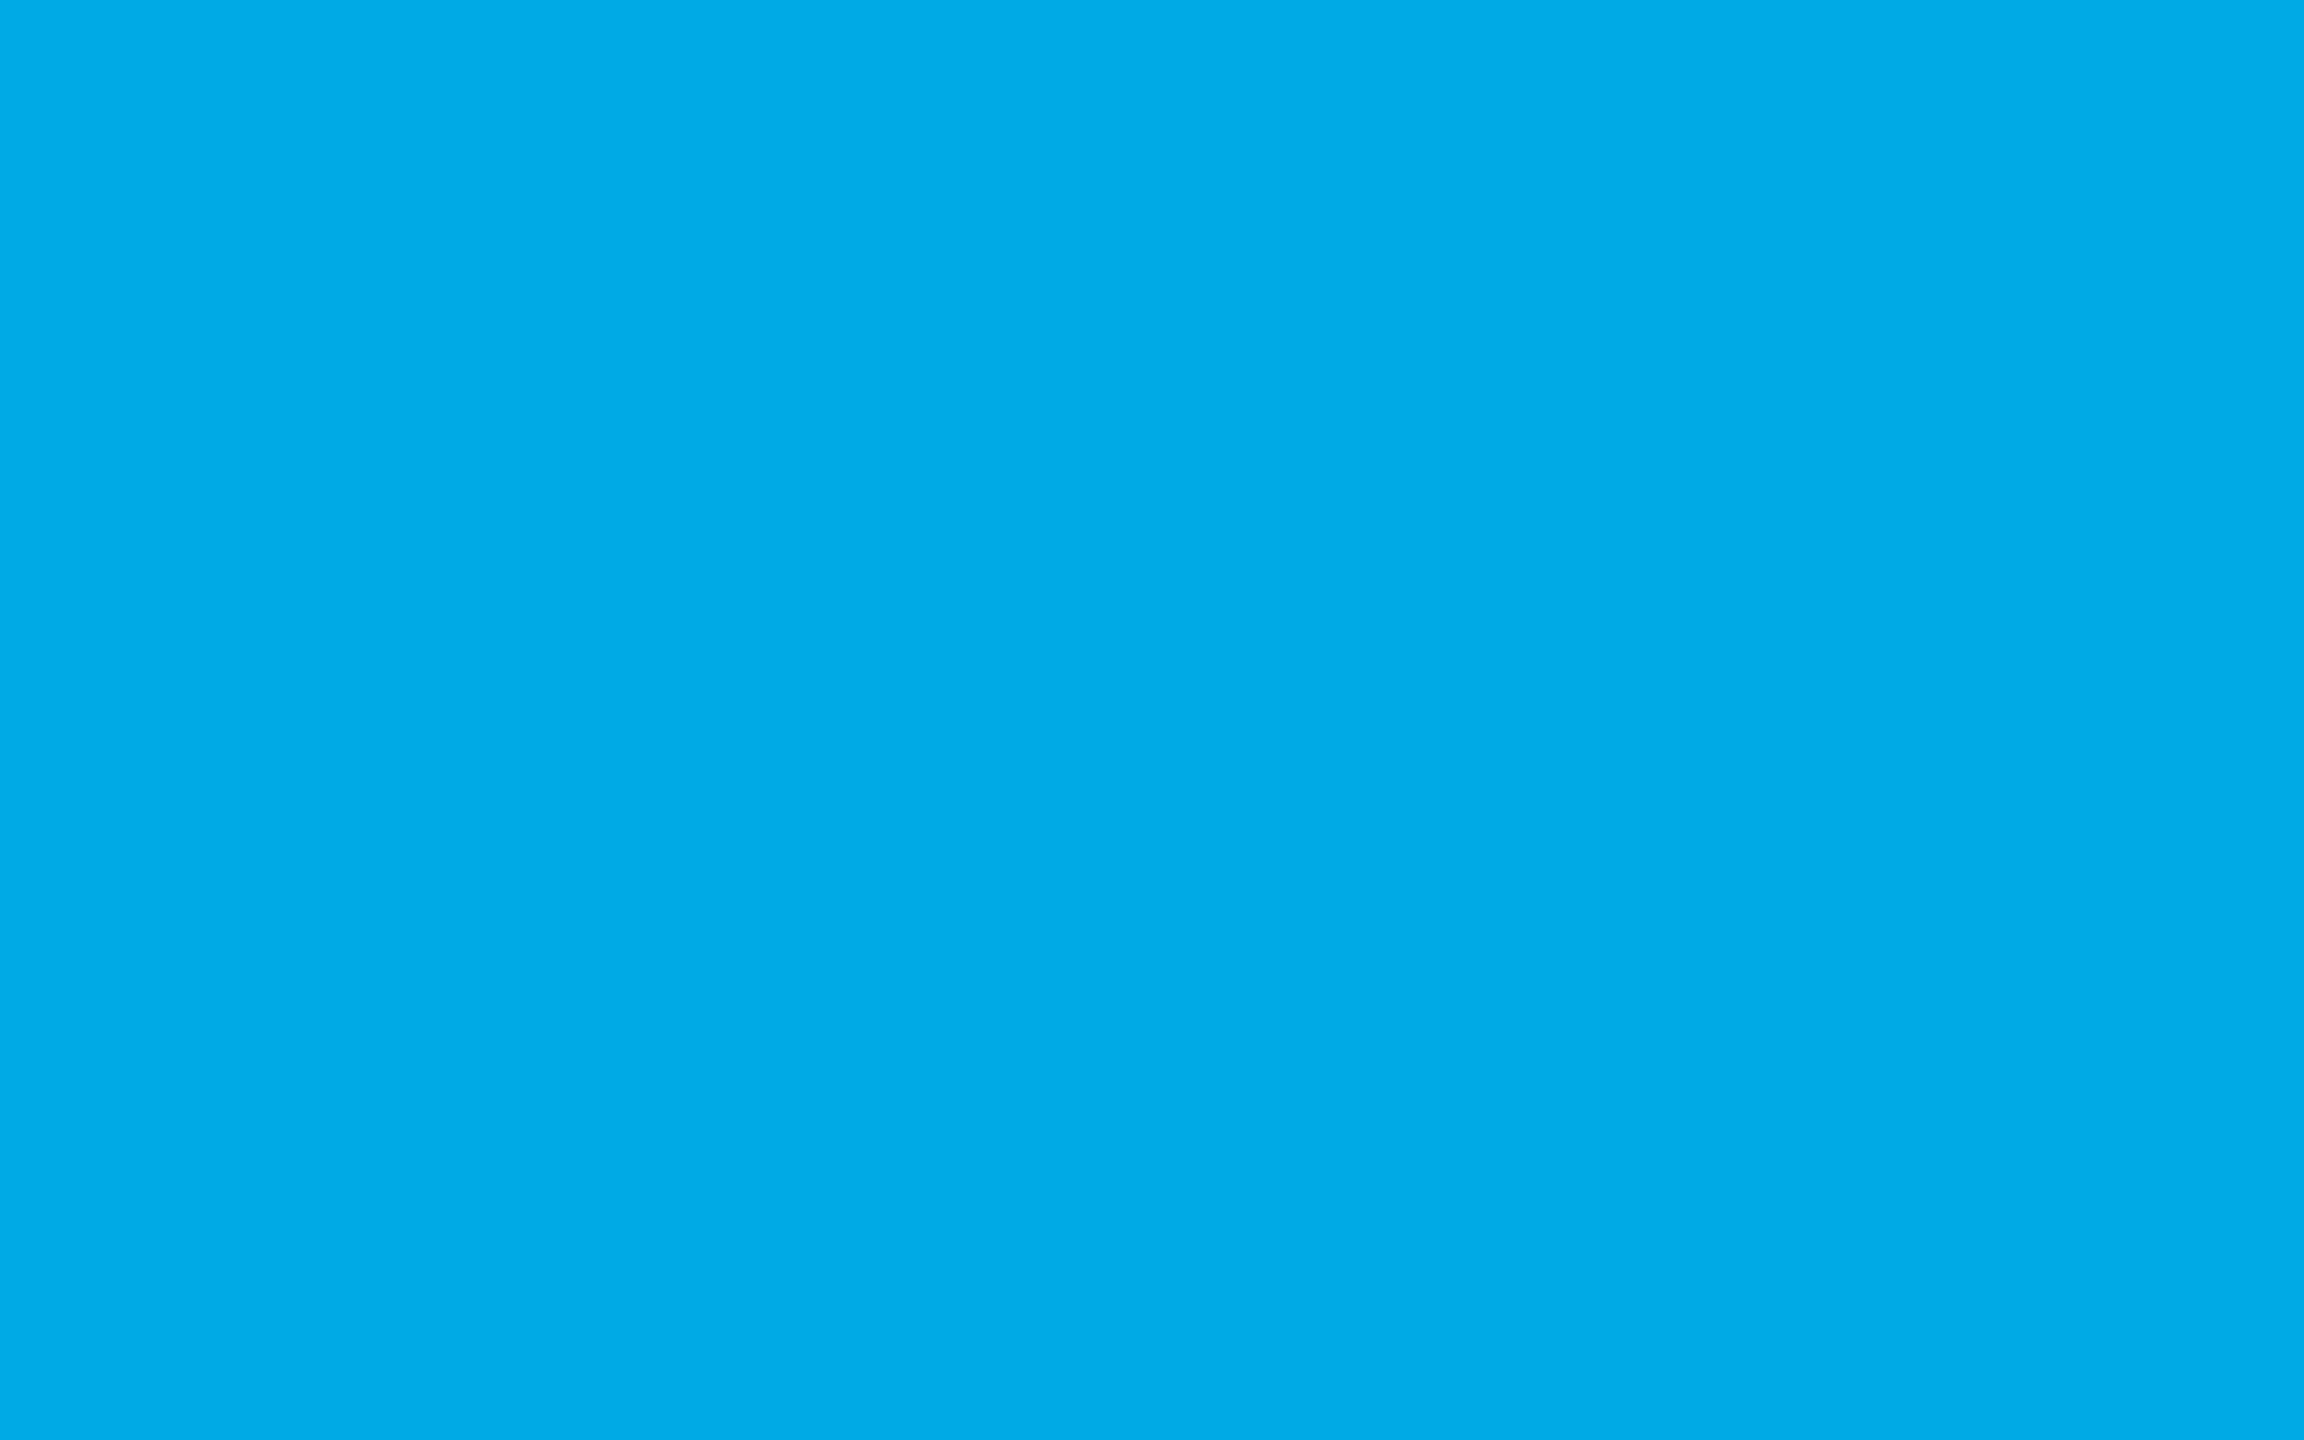 2304x1440 Spanish Sky Blue Solid Color Background